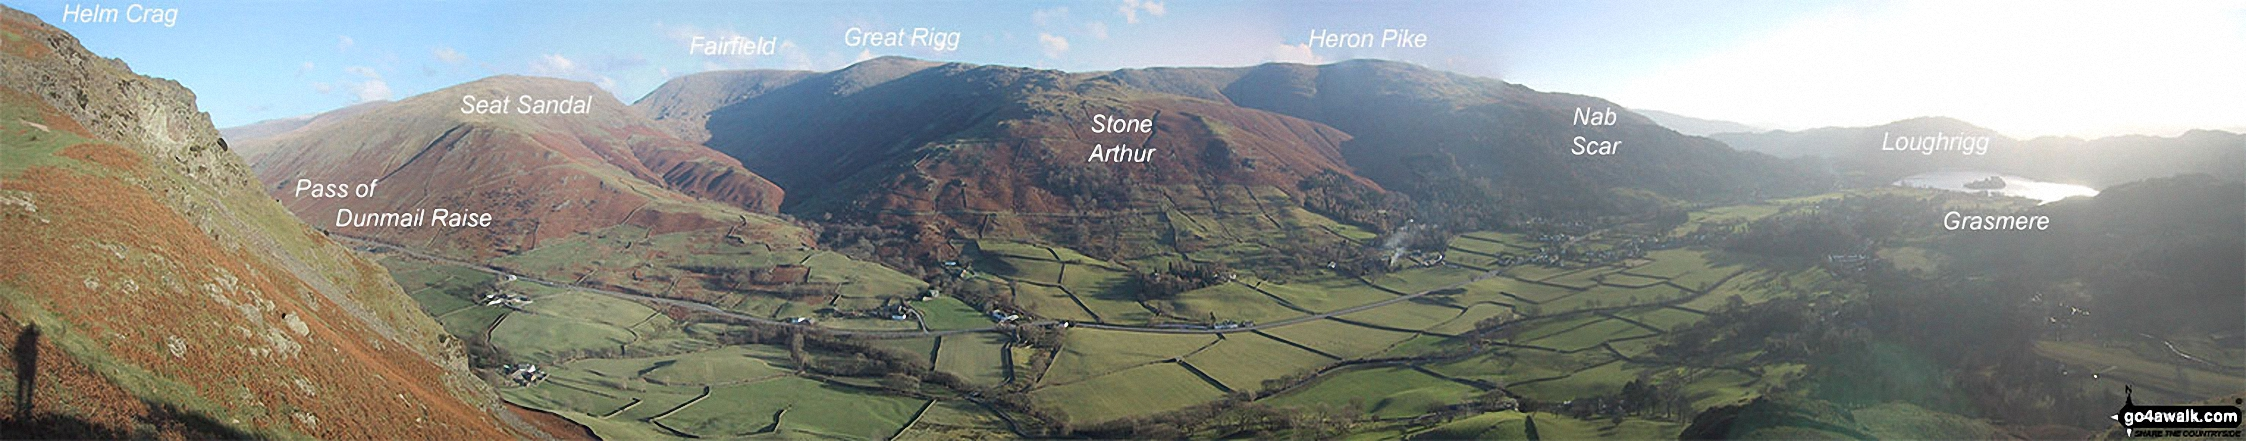 Helm Crag, Seat Sandal,  Grisedale Hause, Fairfield, Great Rigg, Stone Arthur, Heron Crag, Nab Scar, Loughrigg and Grasmere above The Pass of Dunmail Raise from the top of High Raven Crag